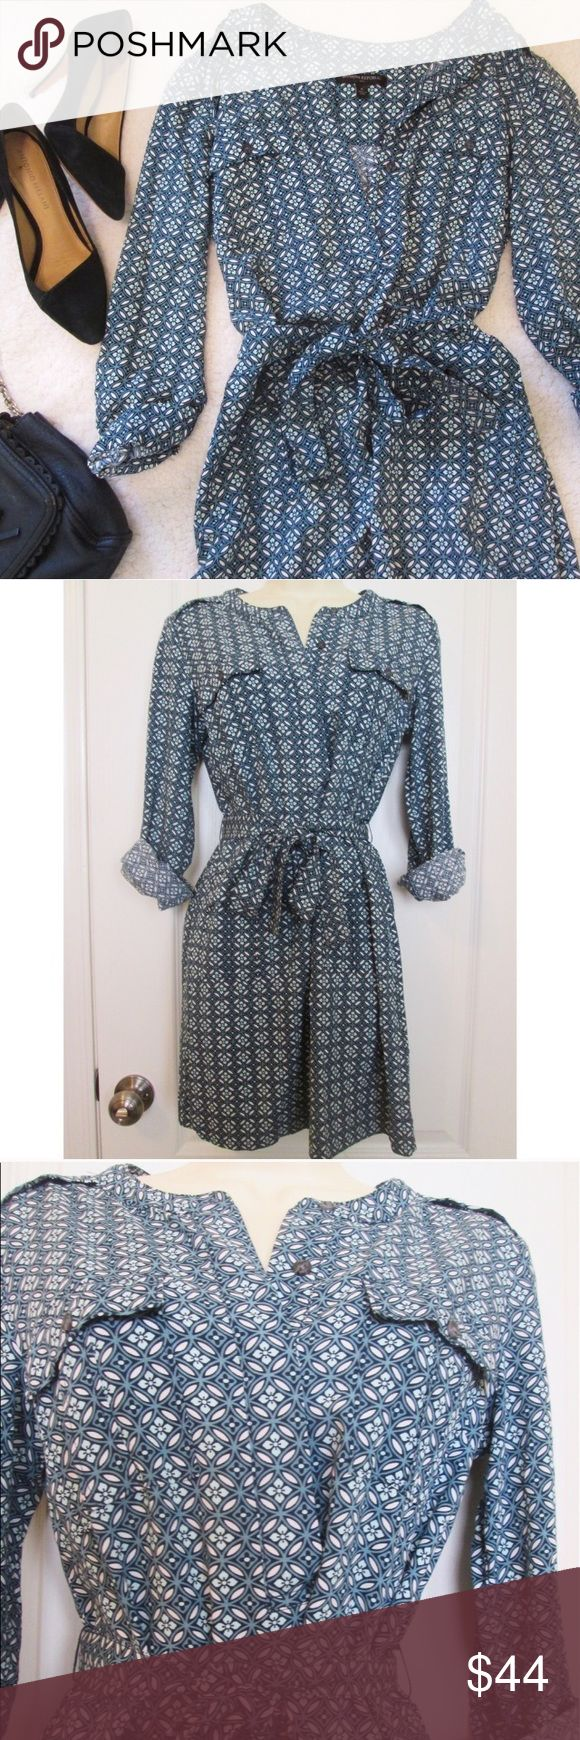 """Banana Republic 3/4 sleeve blue print shirt dress This stylish and modern shirt dress can be worn with stylish leggings and paired with a cute tote bag! There are four pockets, two on top and two below the waist. It is in perfect condition. Measurements: length: approx 32.5"""" arm length: 20"""" bust: 35"""" about size: marked as 6, but the drawstring on the waist which can be adjusted to fit your size. If you are short, this can be worn as a dress as well. 100% rayon. Bundle with just one other…"""